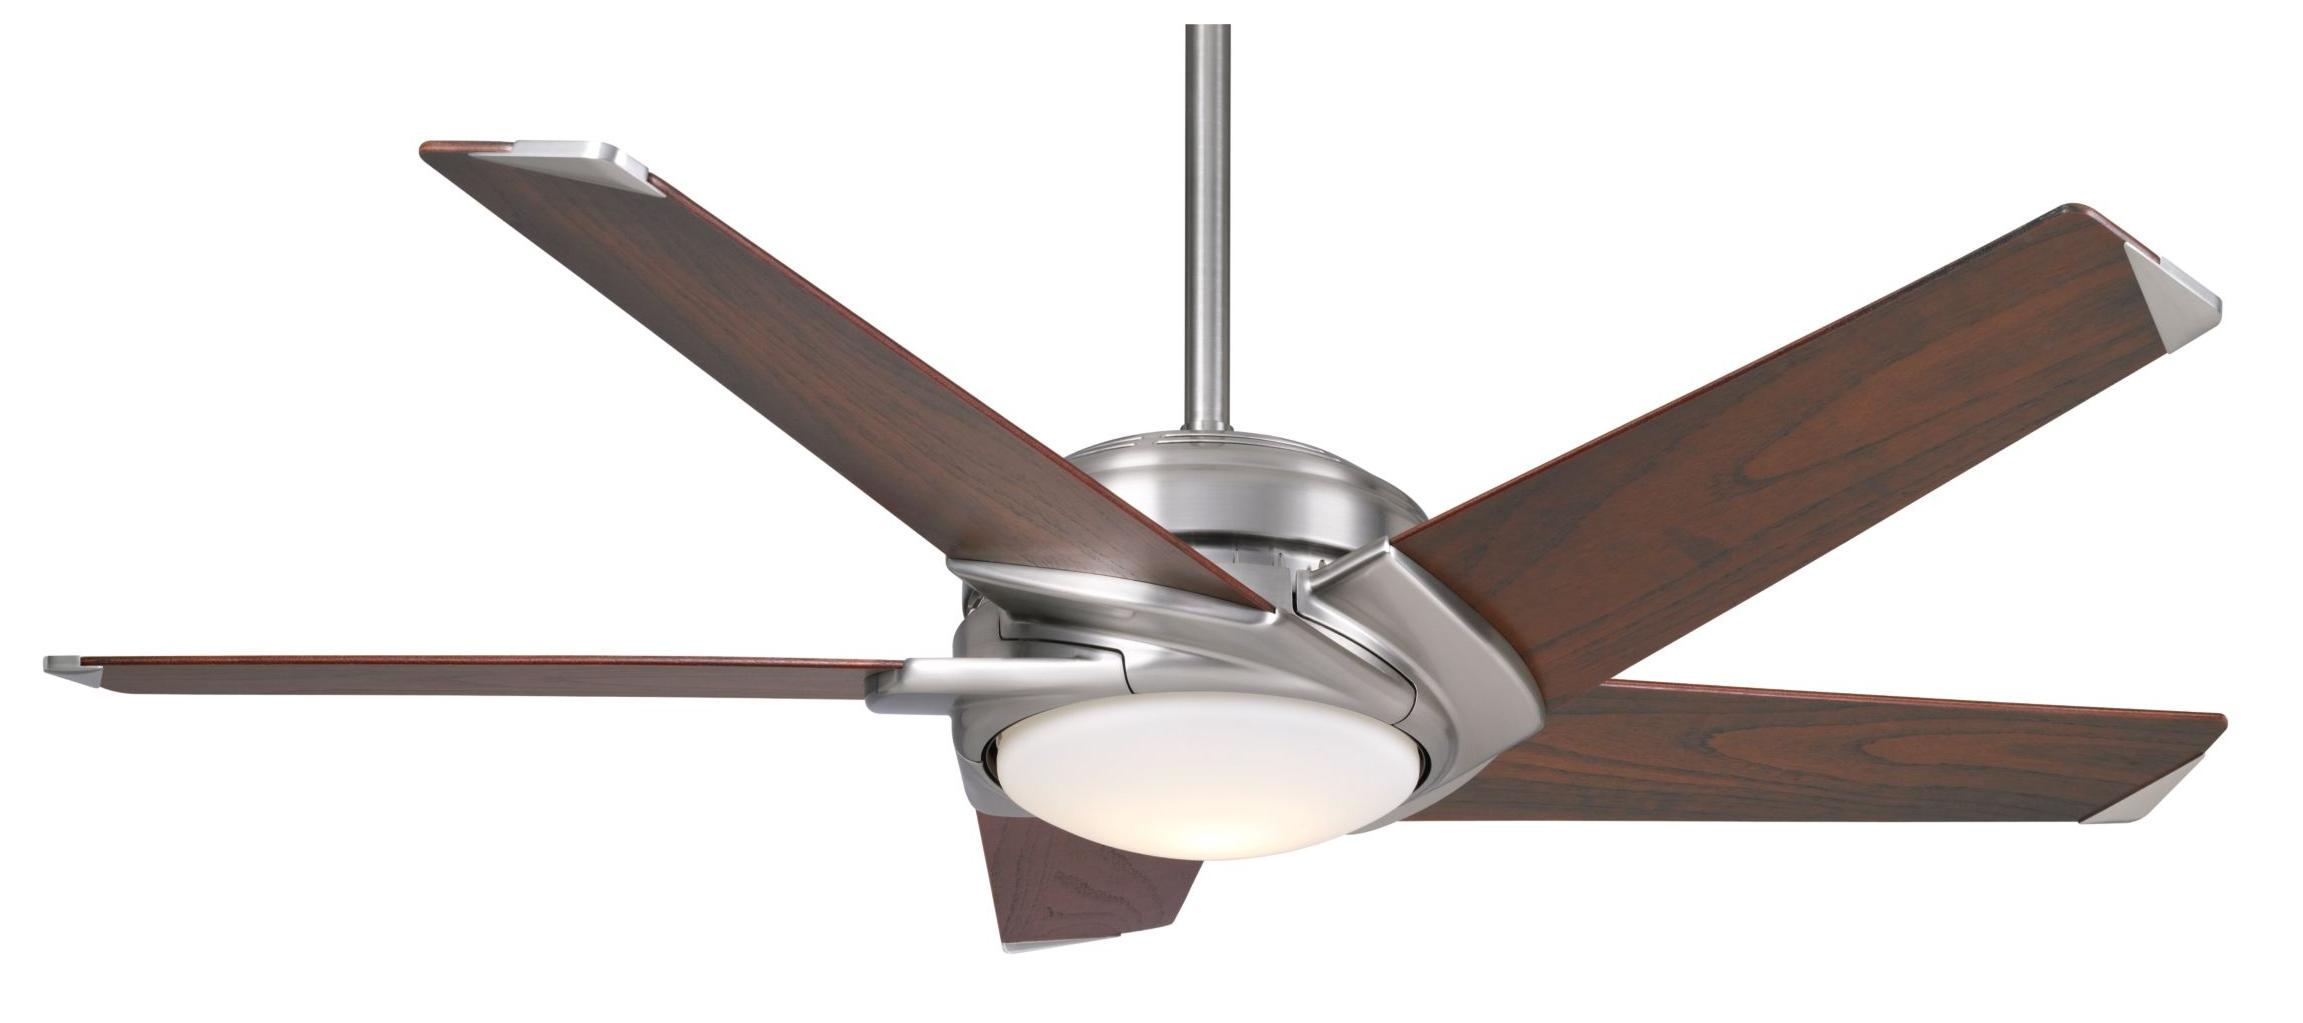 LED Ceiling Fan Lights